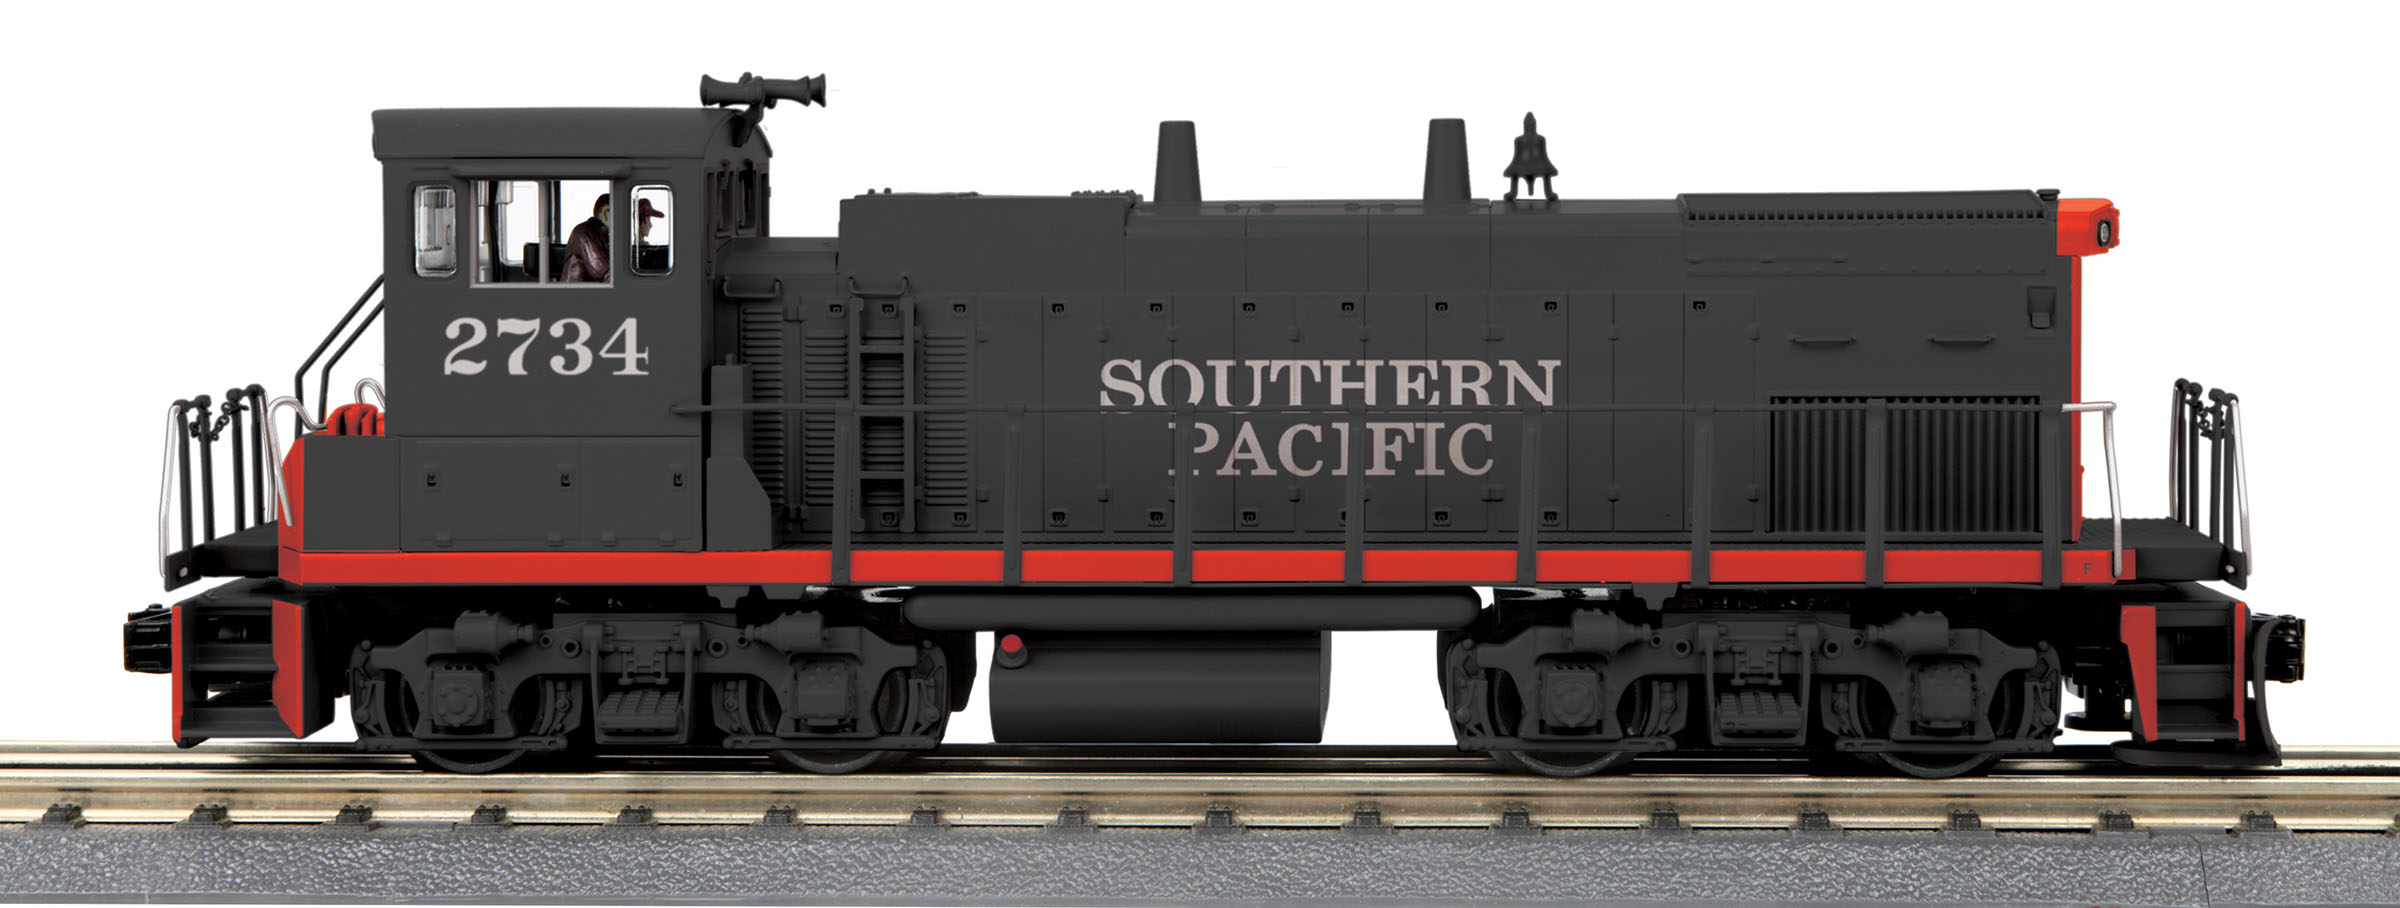 30-20445-1   MTH ELECTRIC TRAINS